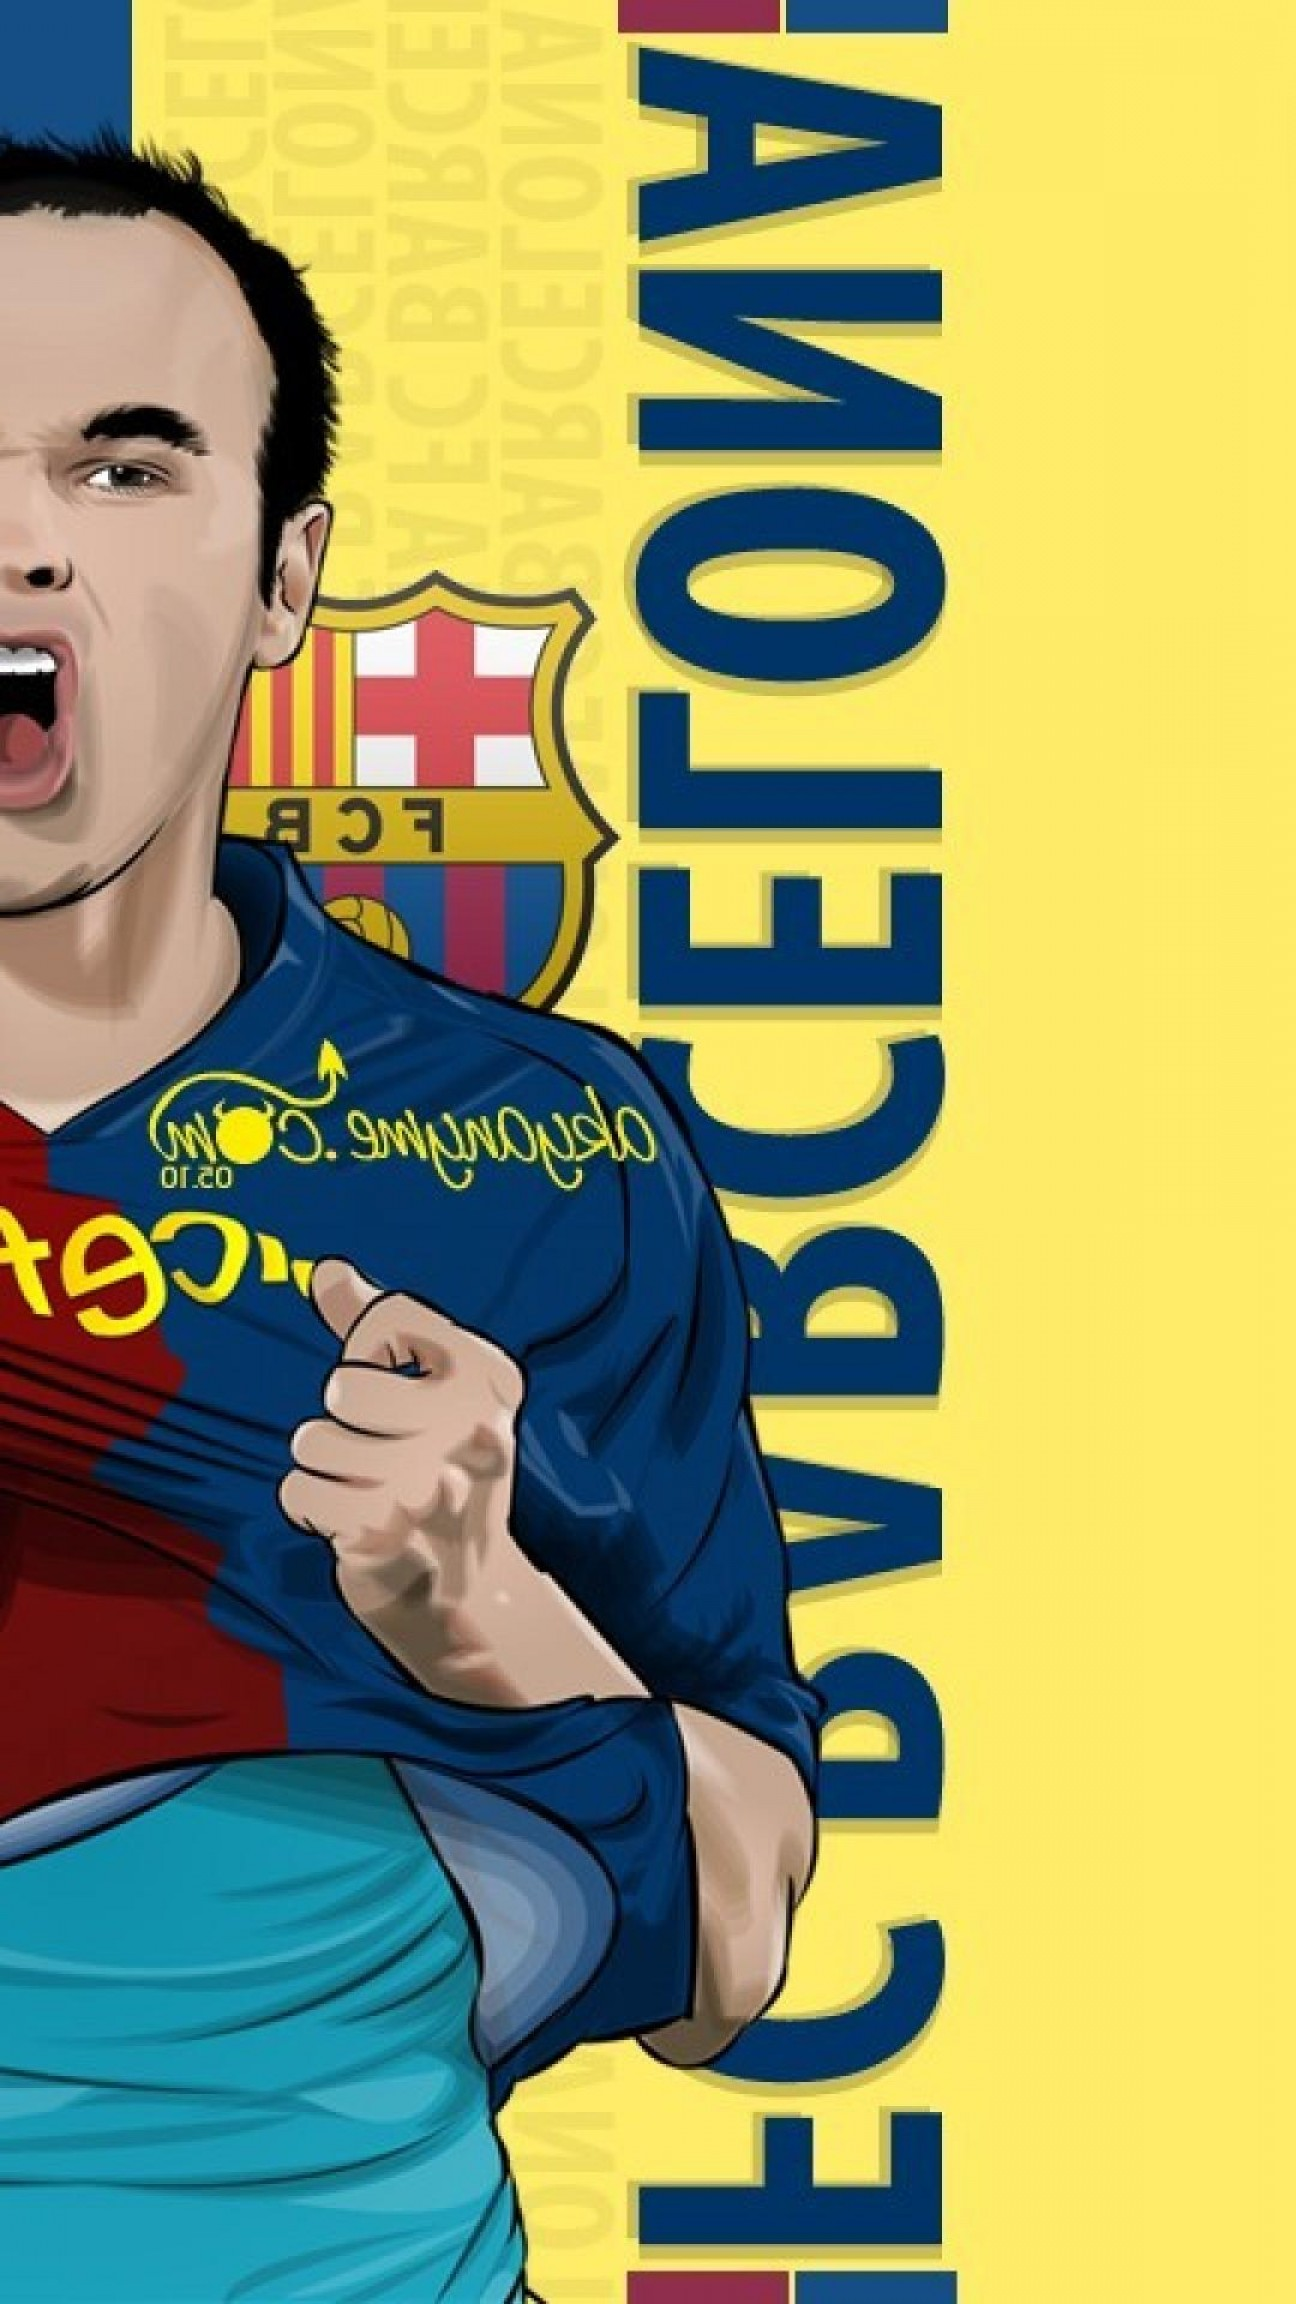 Football Vector Wallpaper: Vector Soccer Athletes Andres Iniesta Football Player Wallpaper